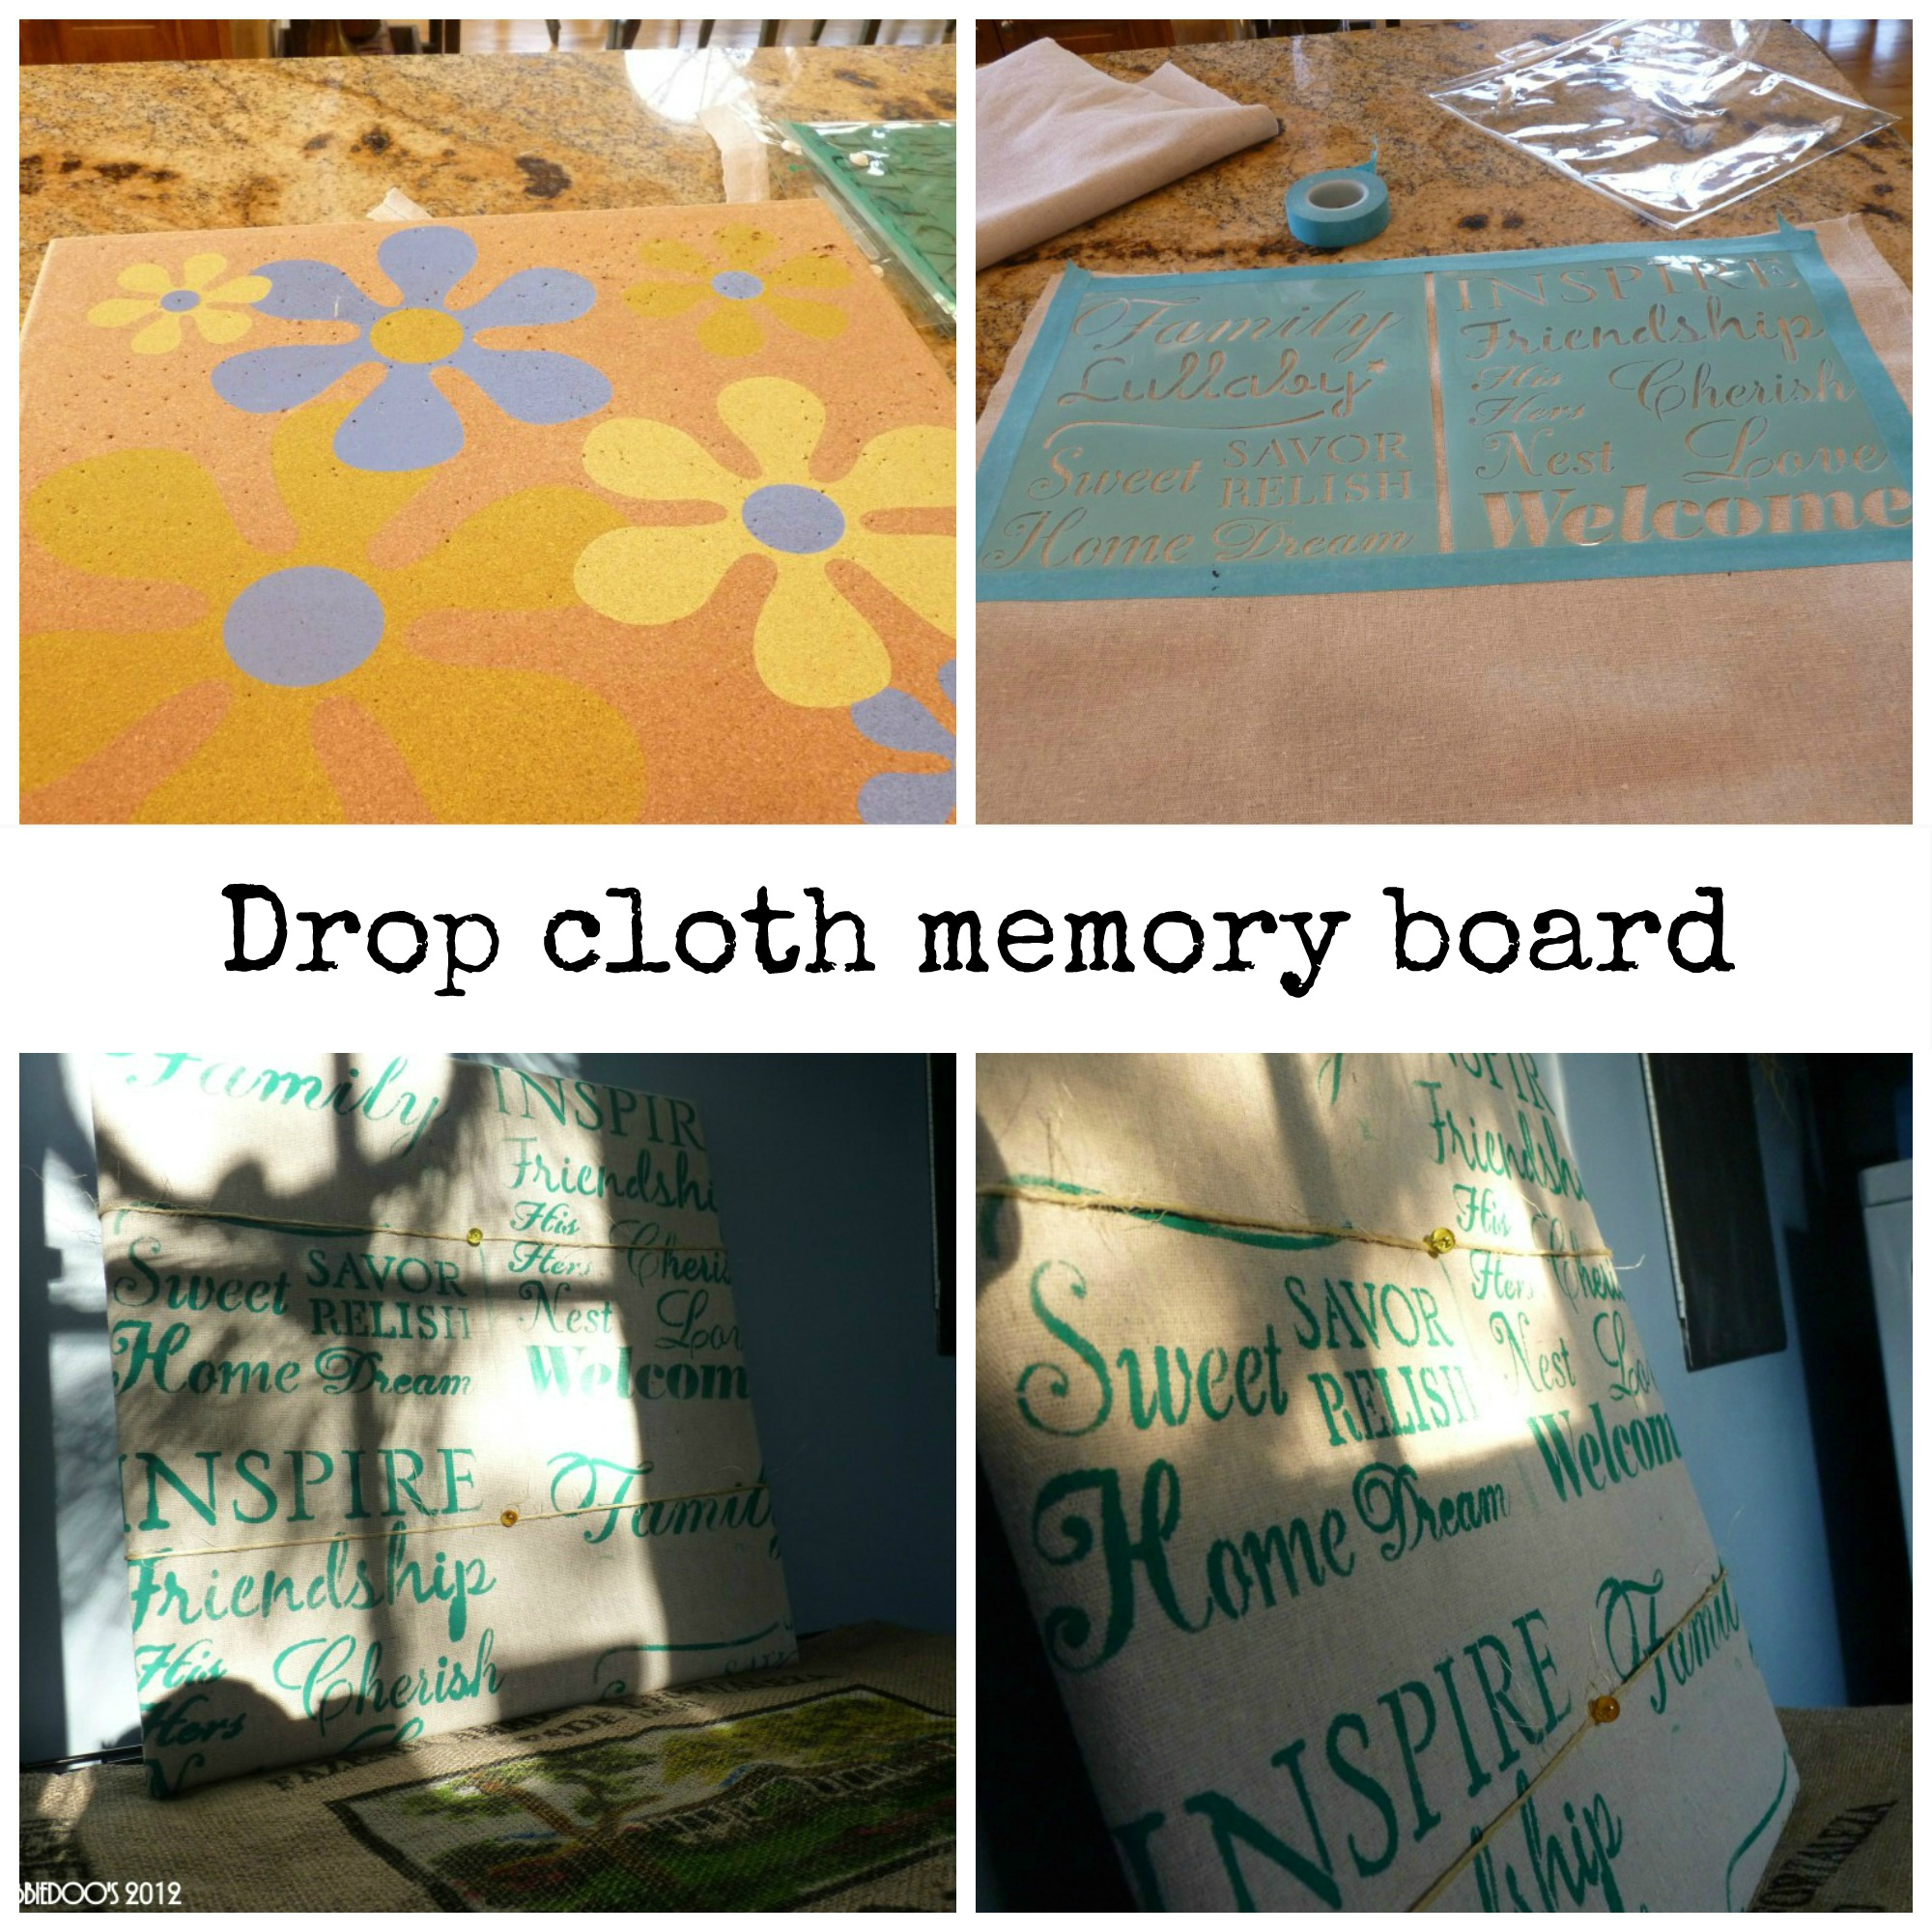 diy-memory-board-from-drop-clothes